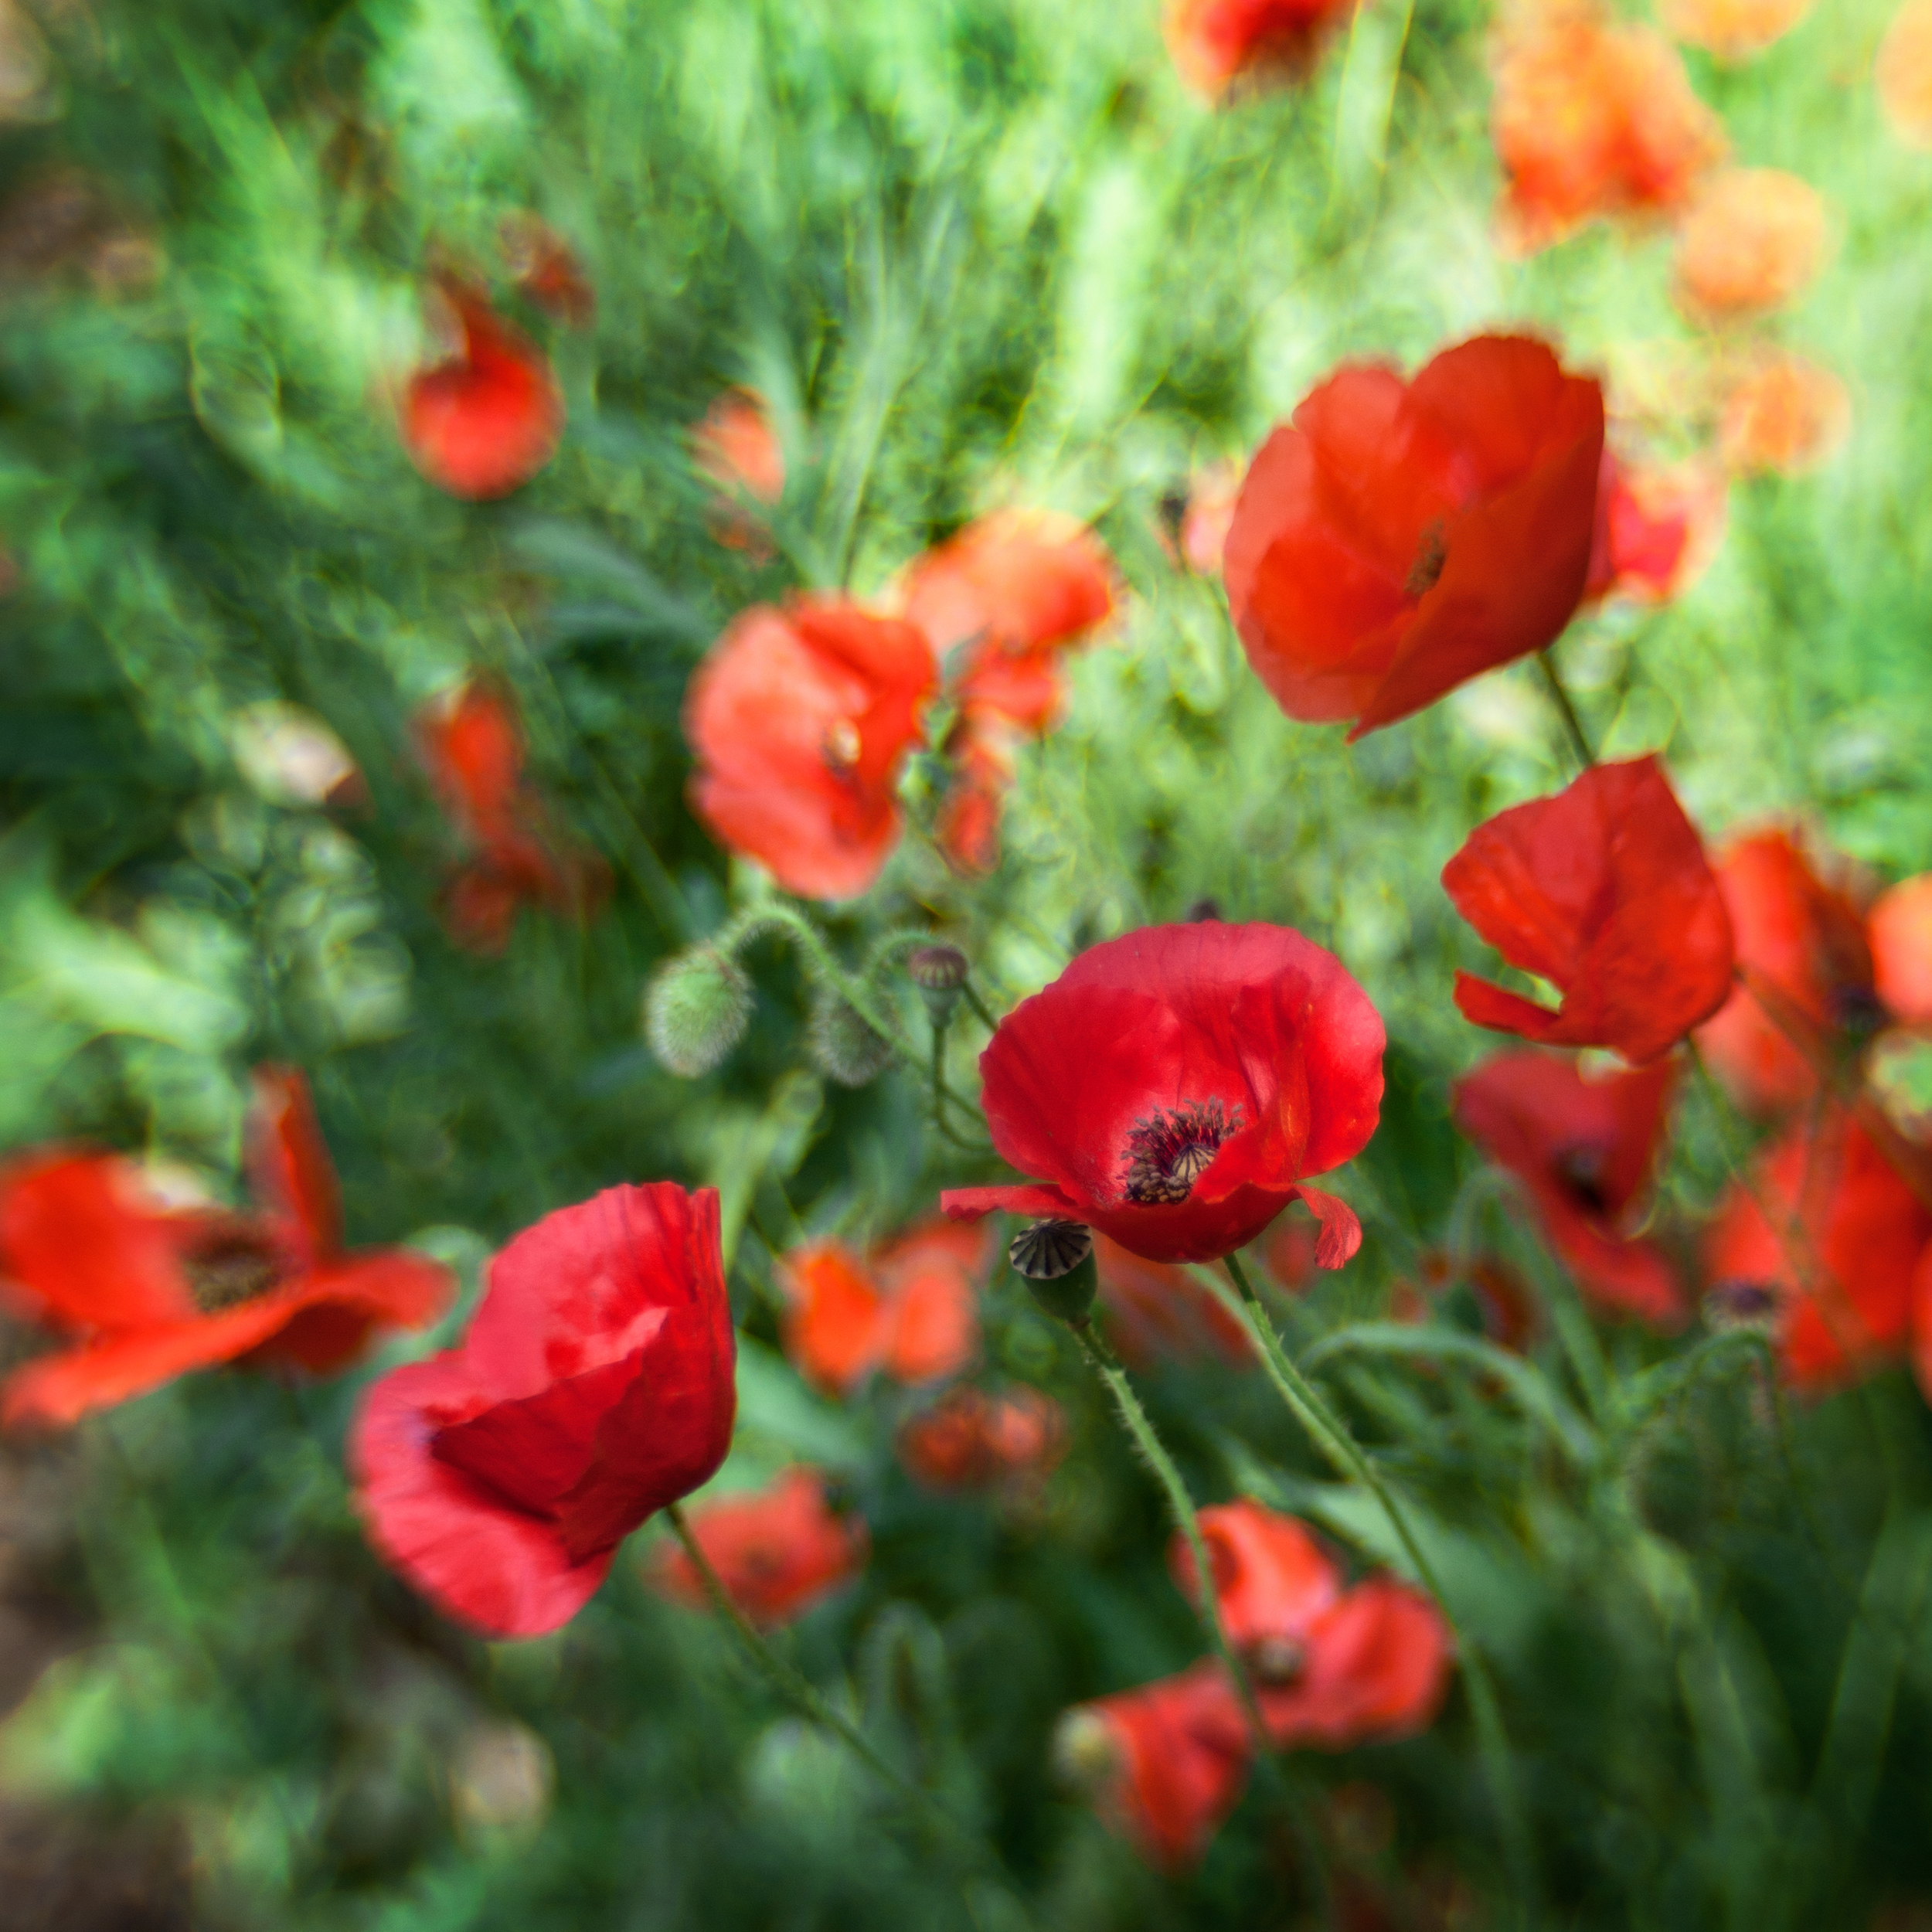 """ Poppies Squared "" by  Anne Worner  IS LICENSED UNDER  CC BY-SA 2.0 ."